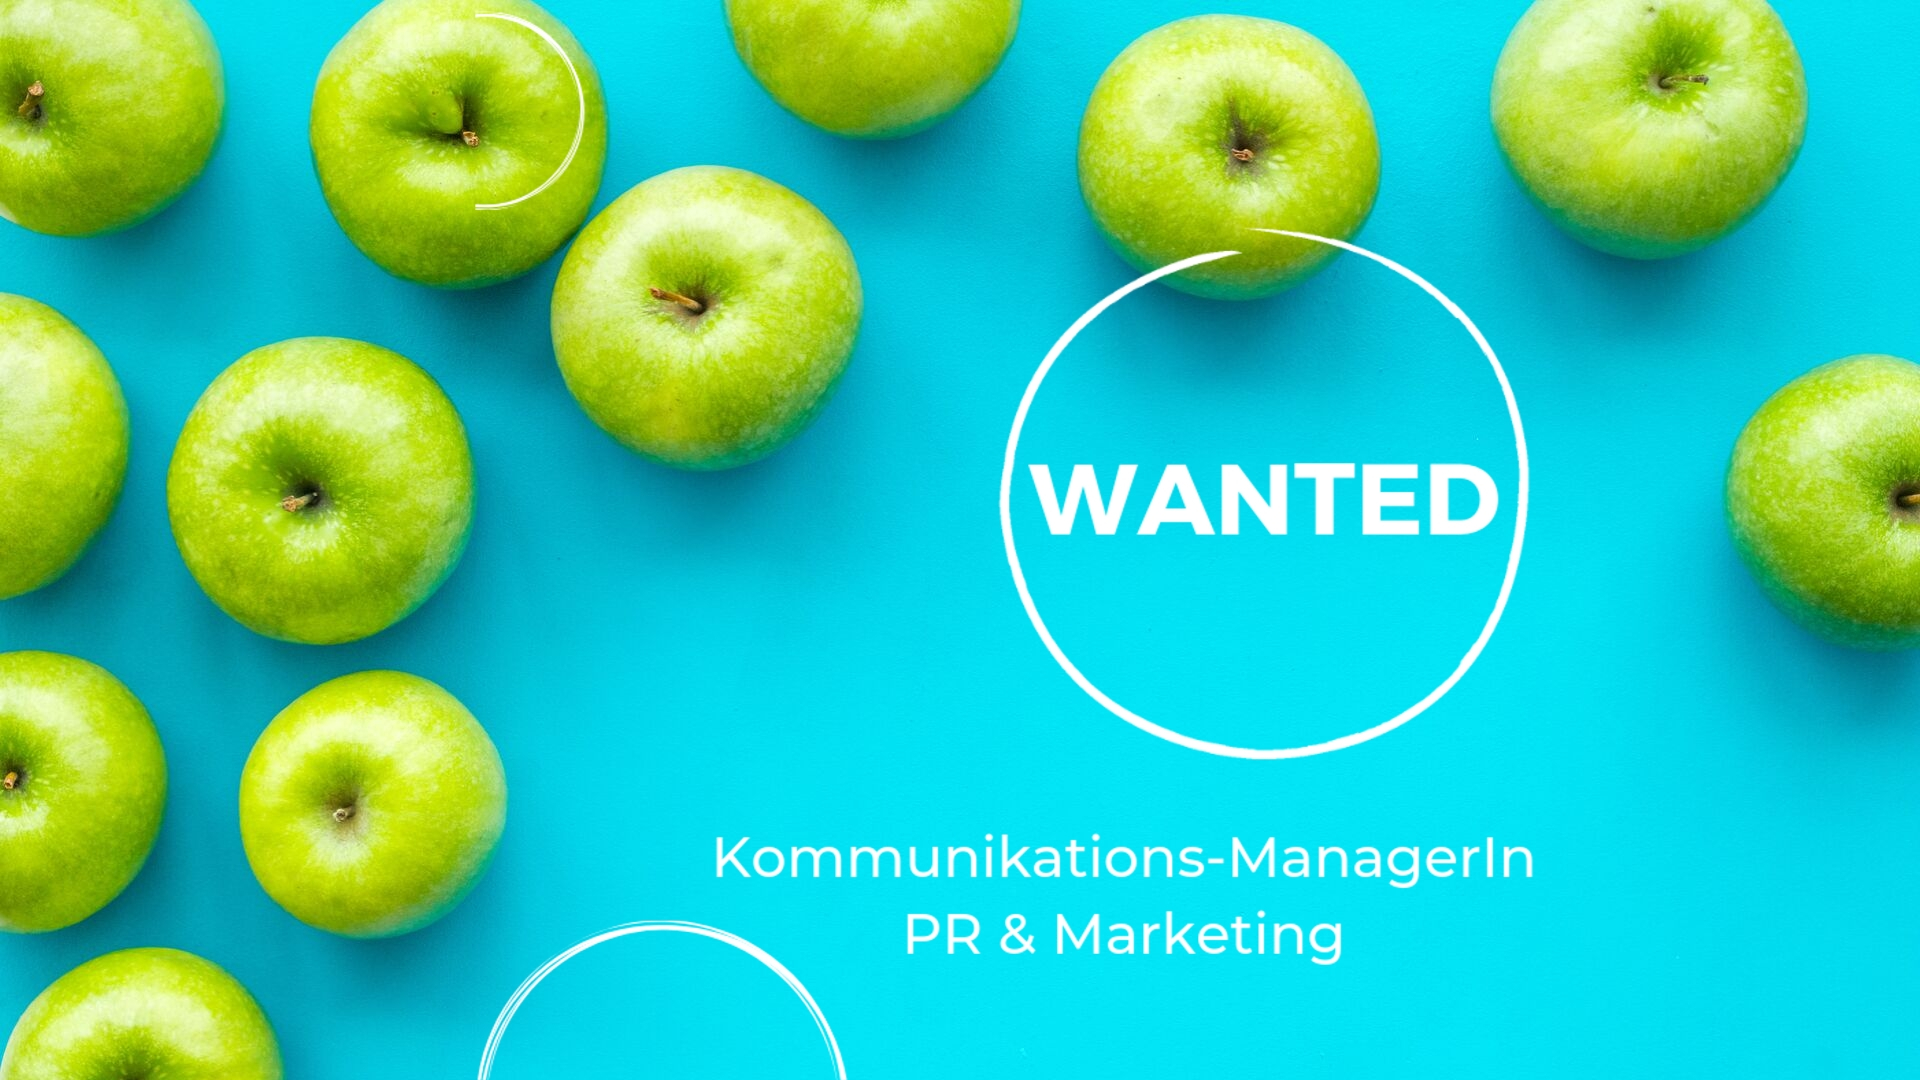 Kommunikations-ManagerIn / PR & Marketing